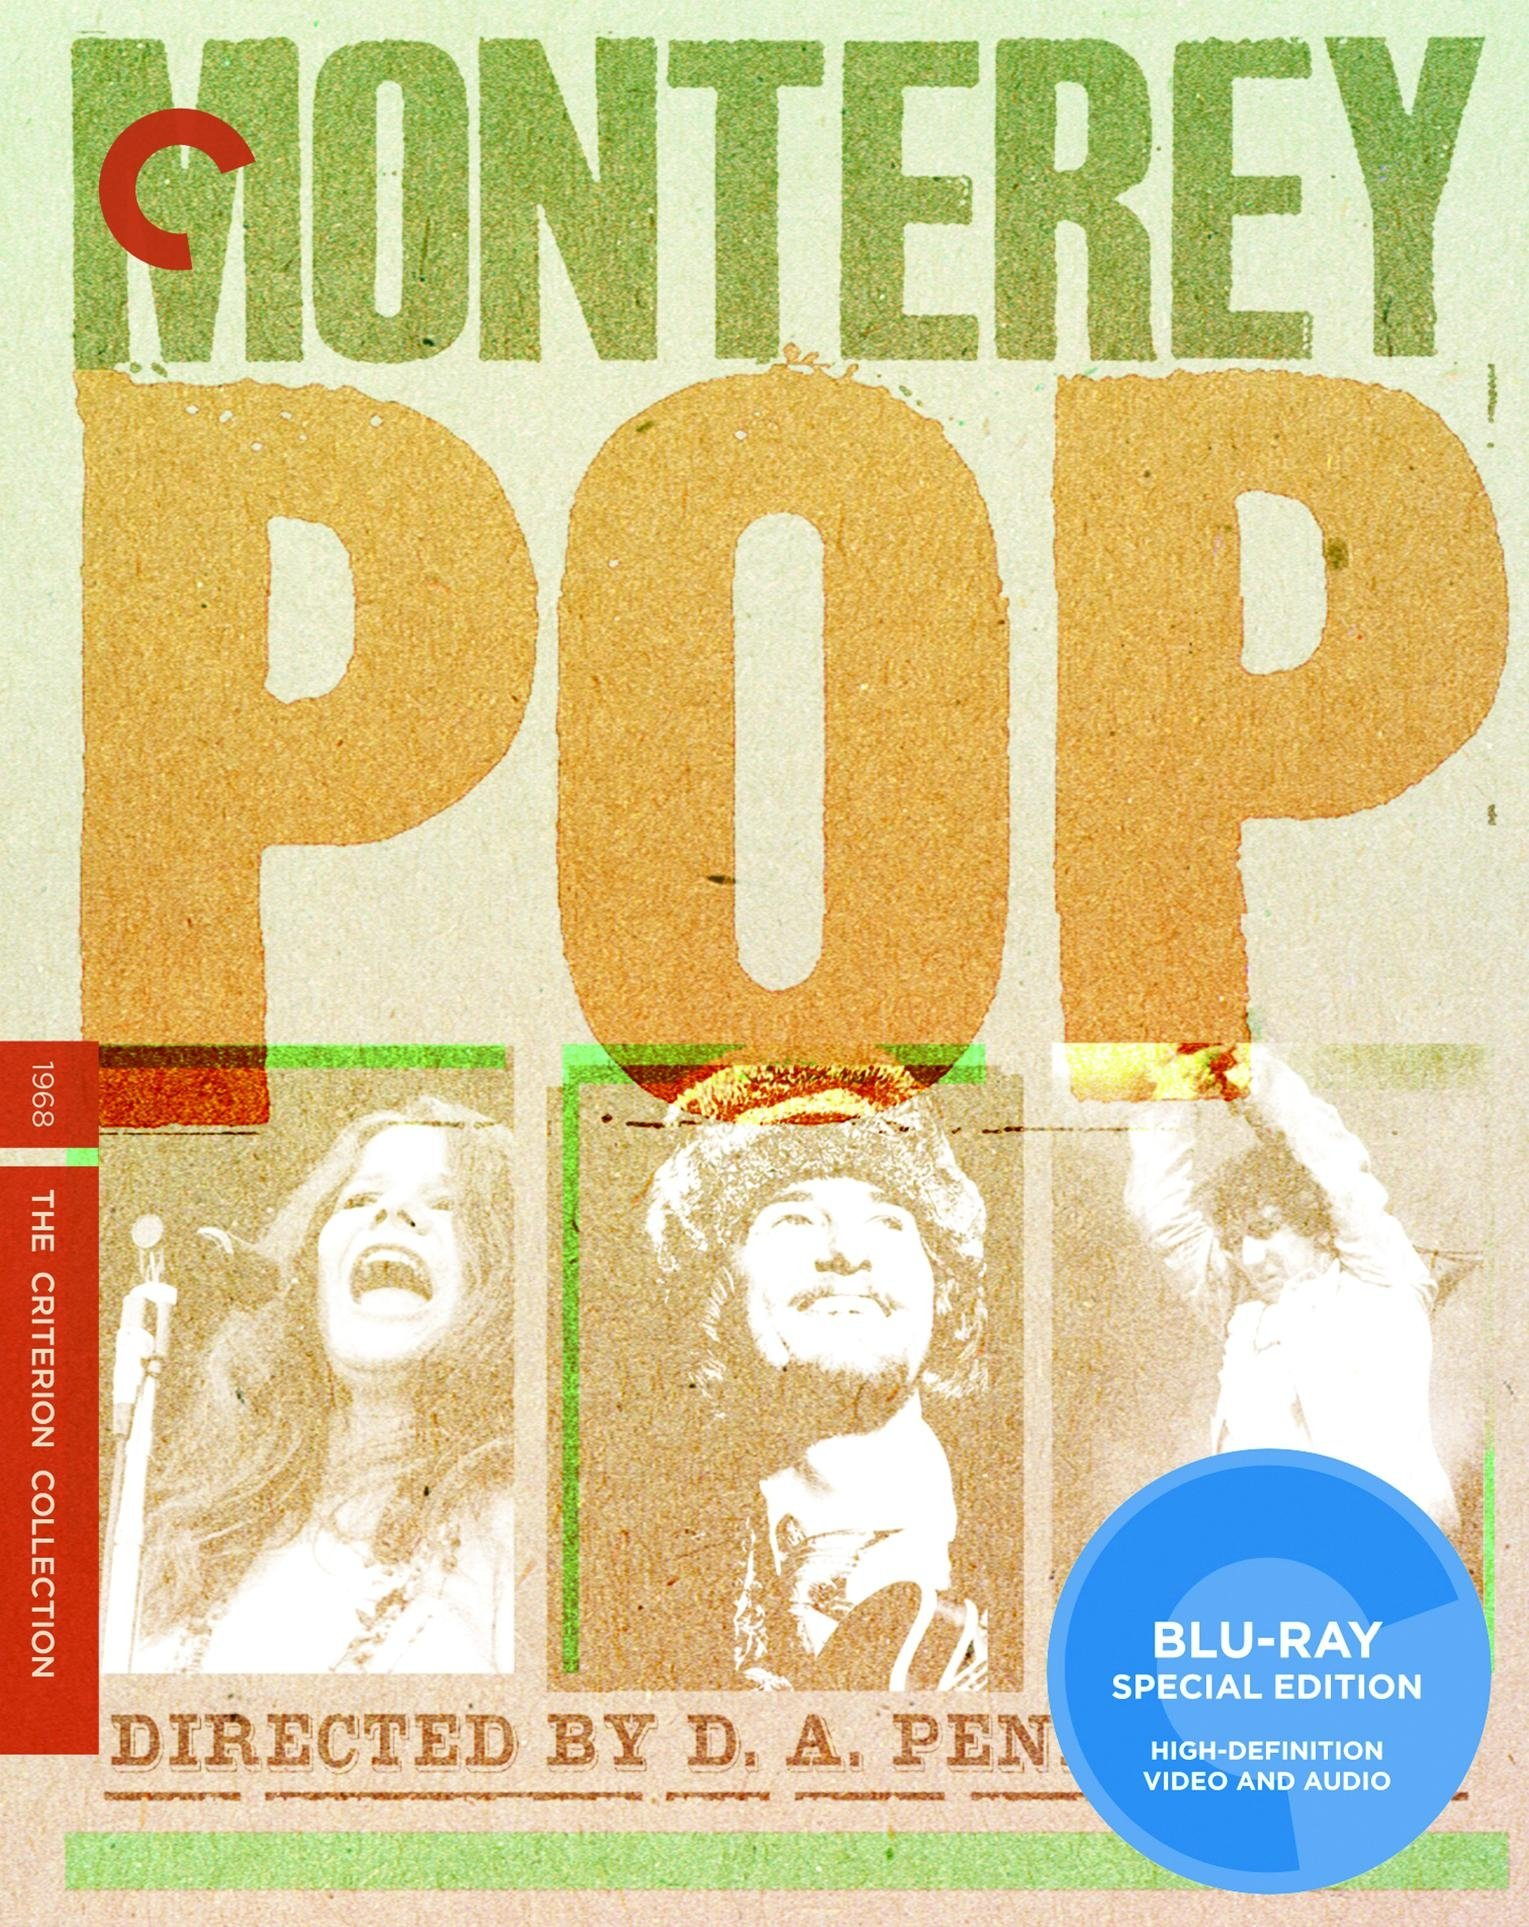 Blu-ray : Mama Cass Elliot - Criterion Collection: Monterey Pop (Full Frame, Dolby, Digital Theater System, AC-3)